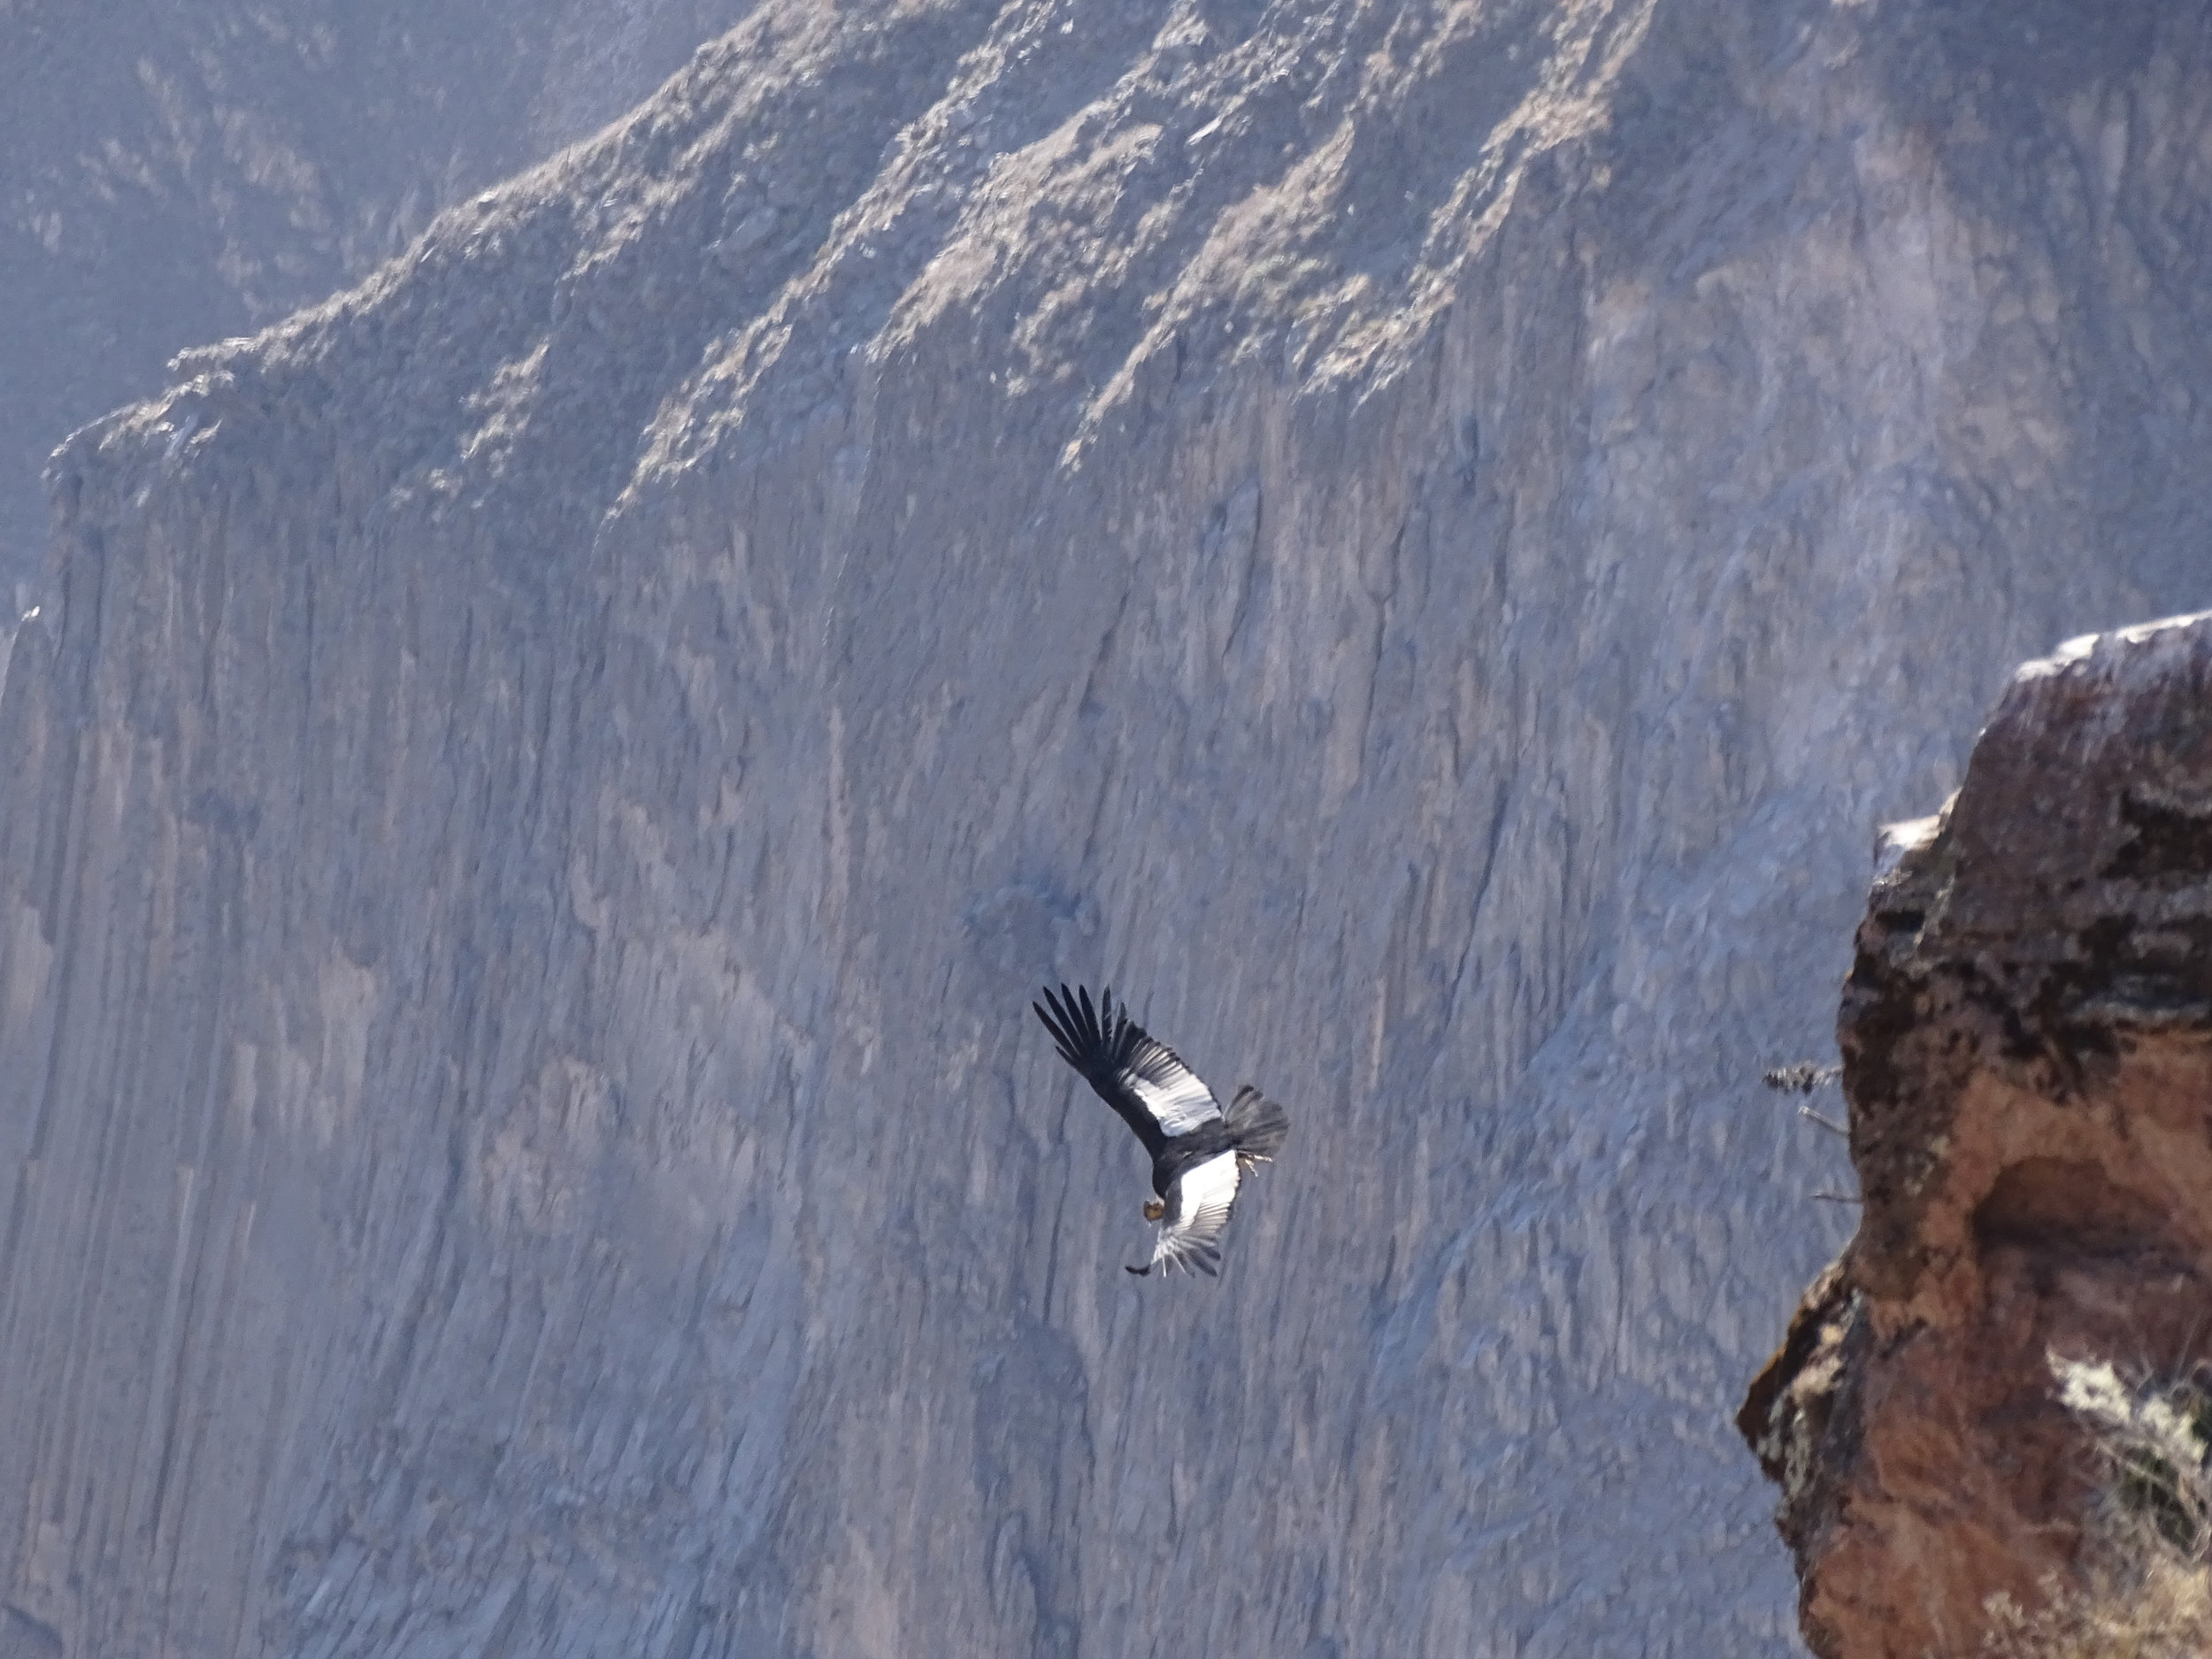 The condors launch by diving off the ledge.  They have underdeveloped flight musculature compared to most birds, and so rarely flap their wings.